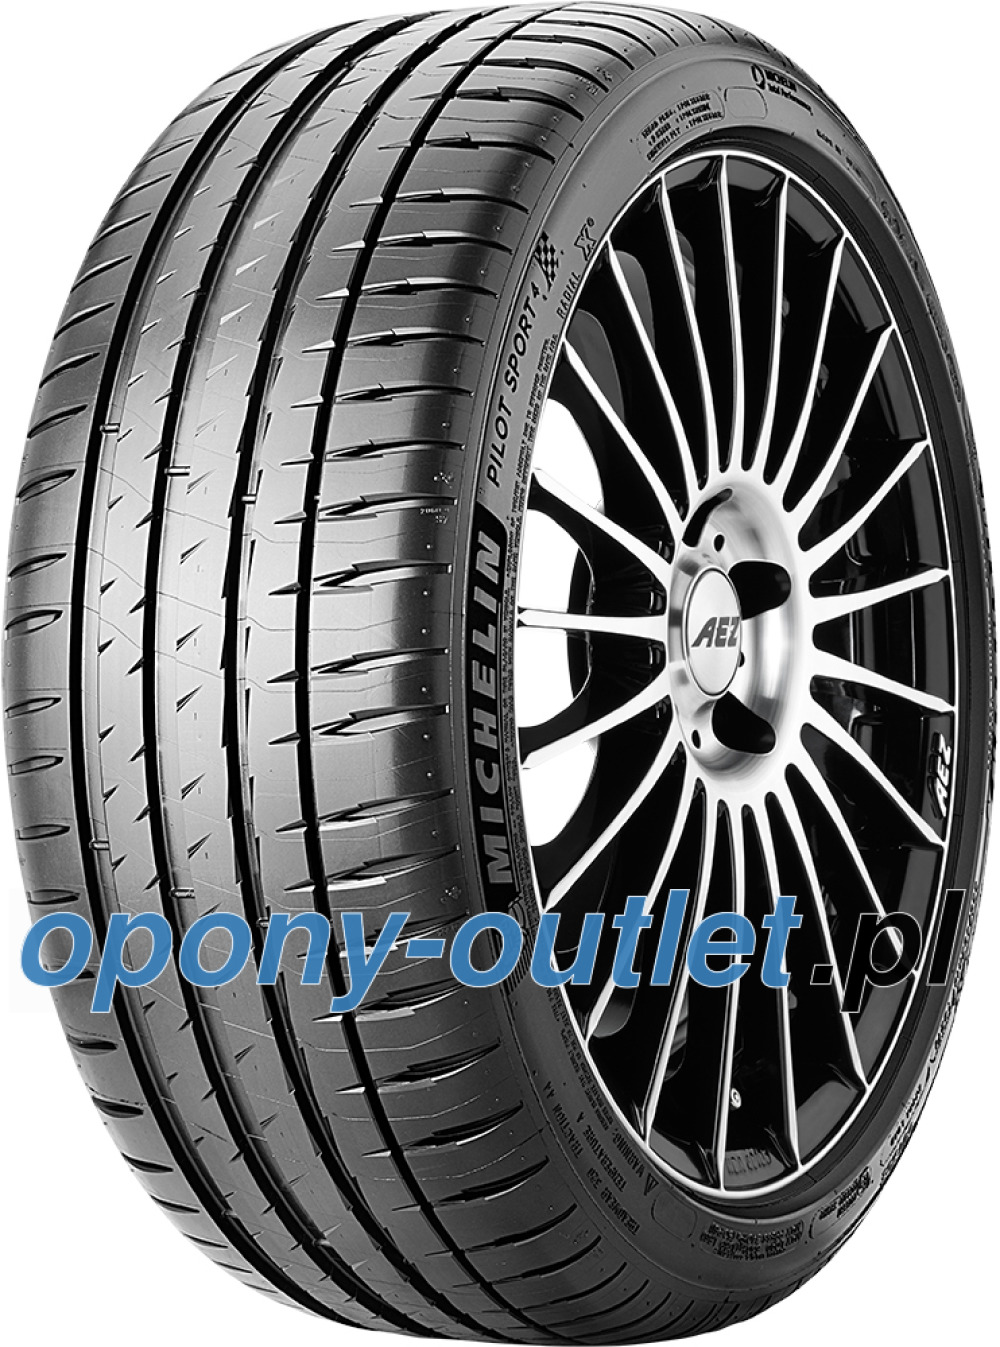 Michelin Pilot Sport 4 ( 225/45 ZR17 94Y XL )